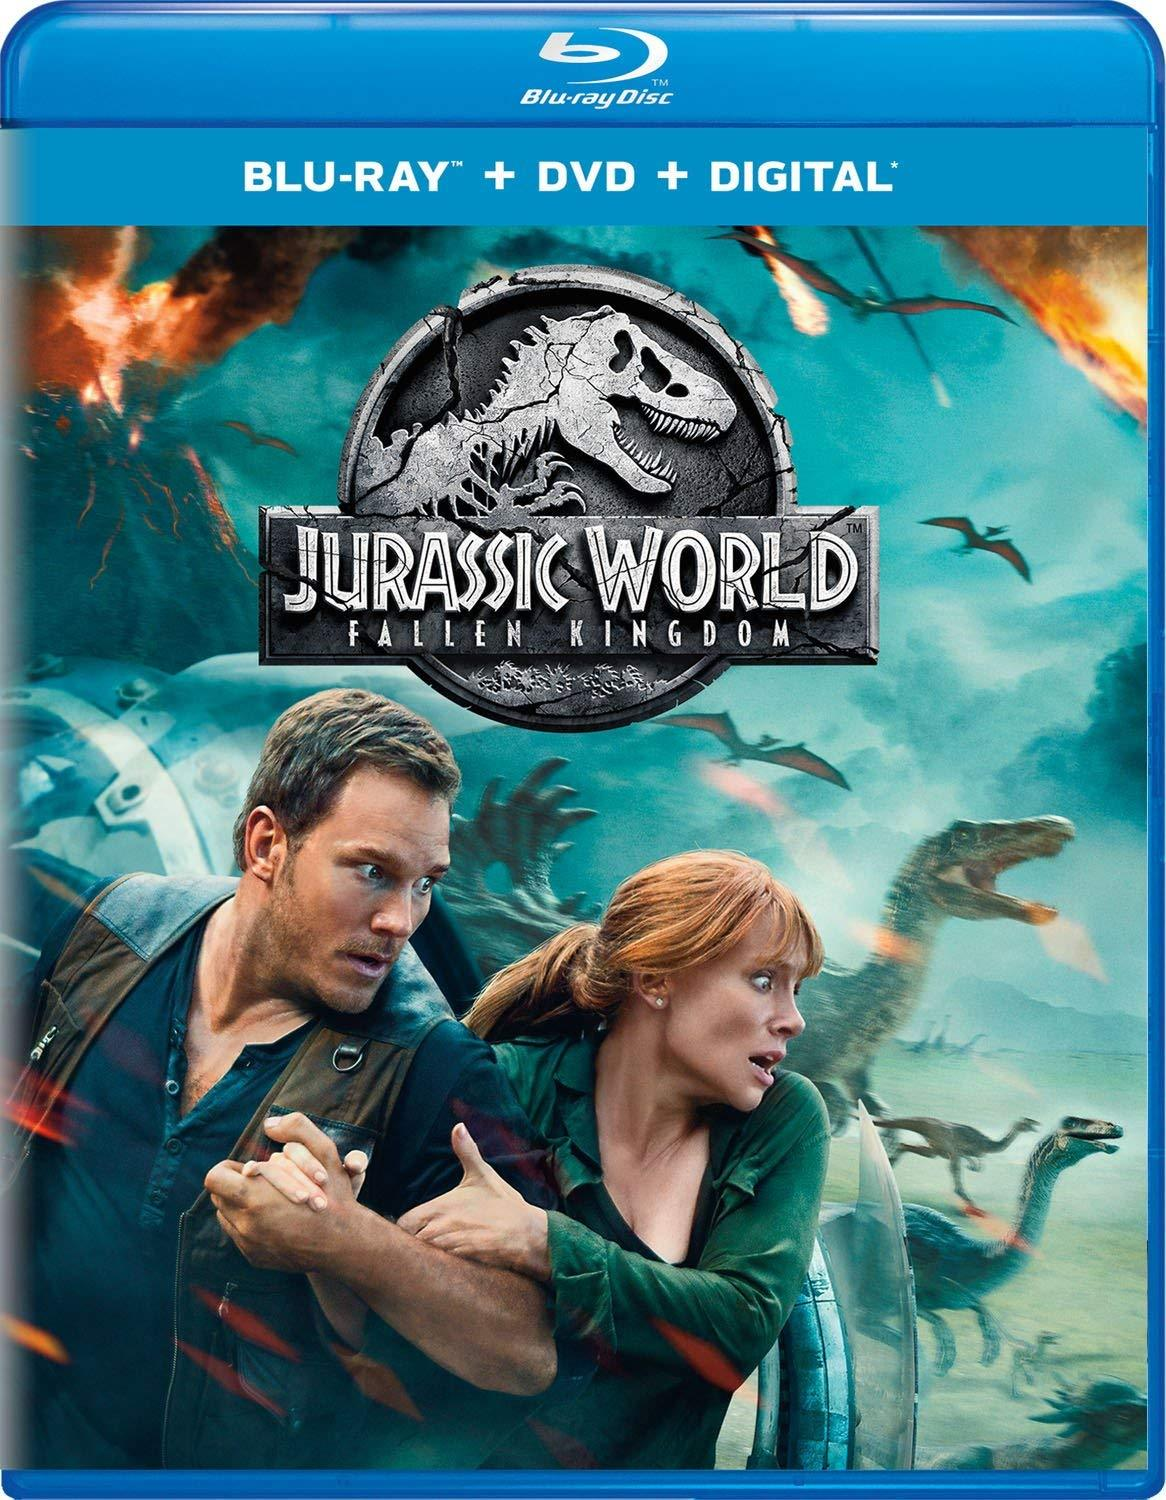 Jurassic World: Fallen Kingdom [Blu-ray + DVD + Digital]